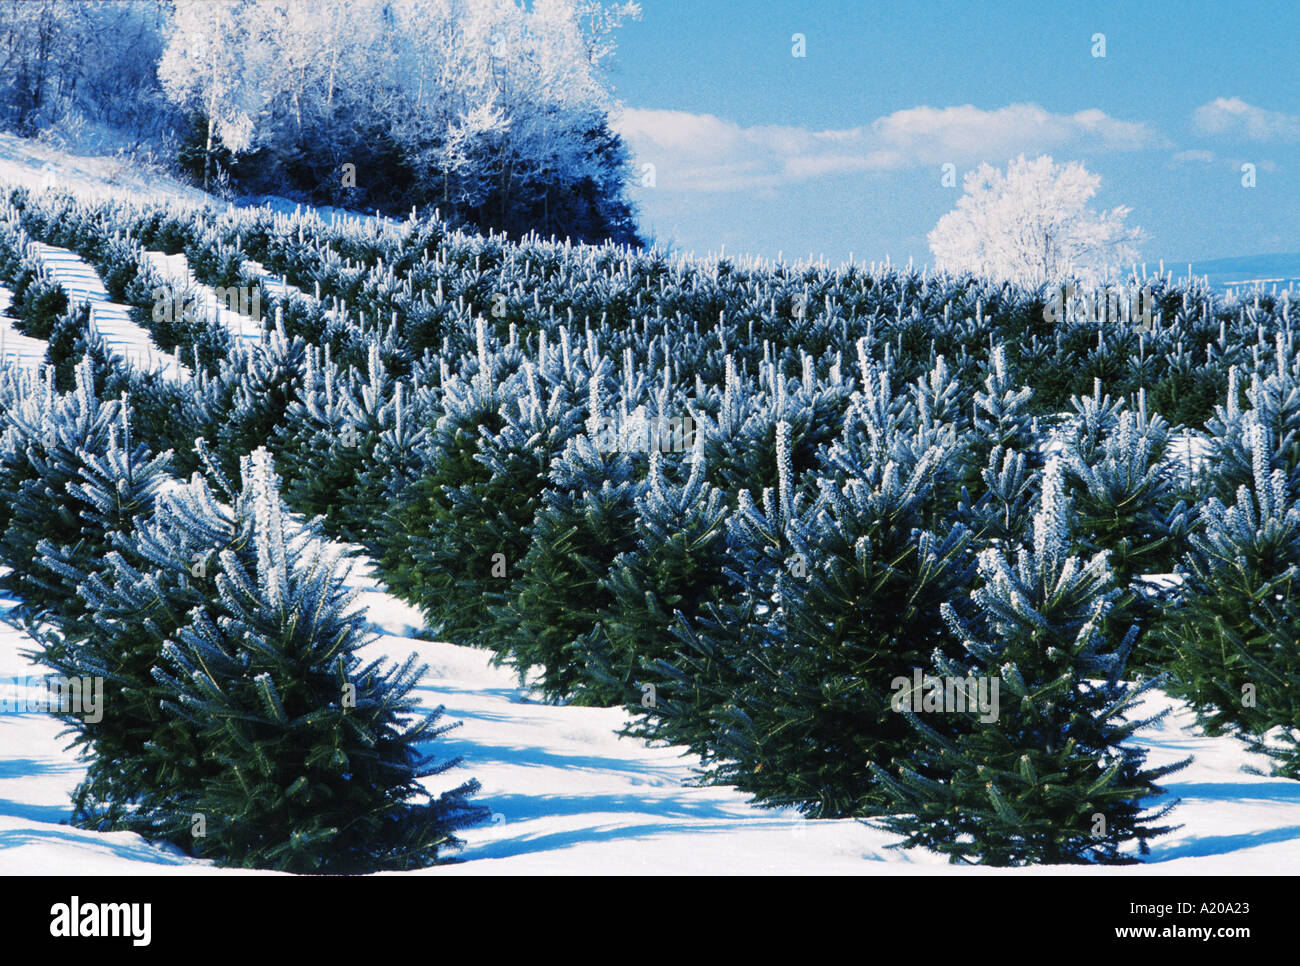 christmas tree farm new brunswick canada winter scene with frost on the trees stock image - Christmas Tree Farms Colorado